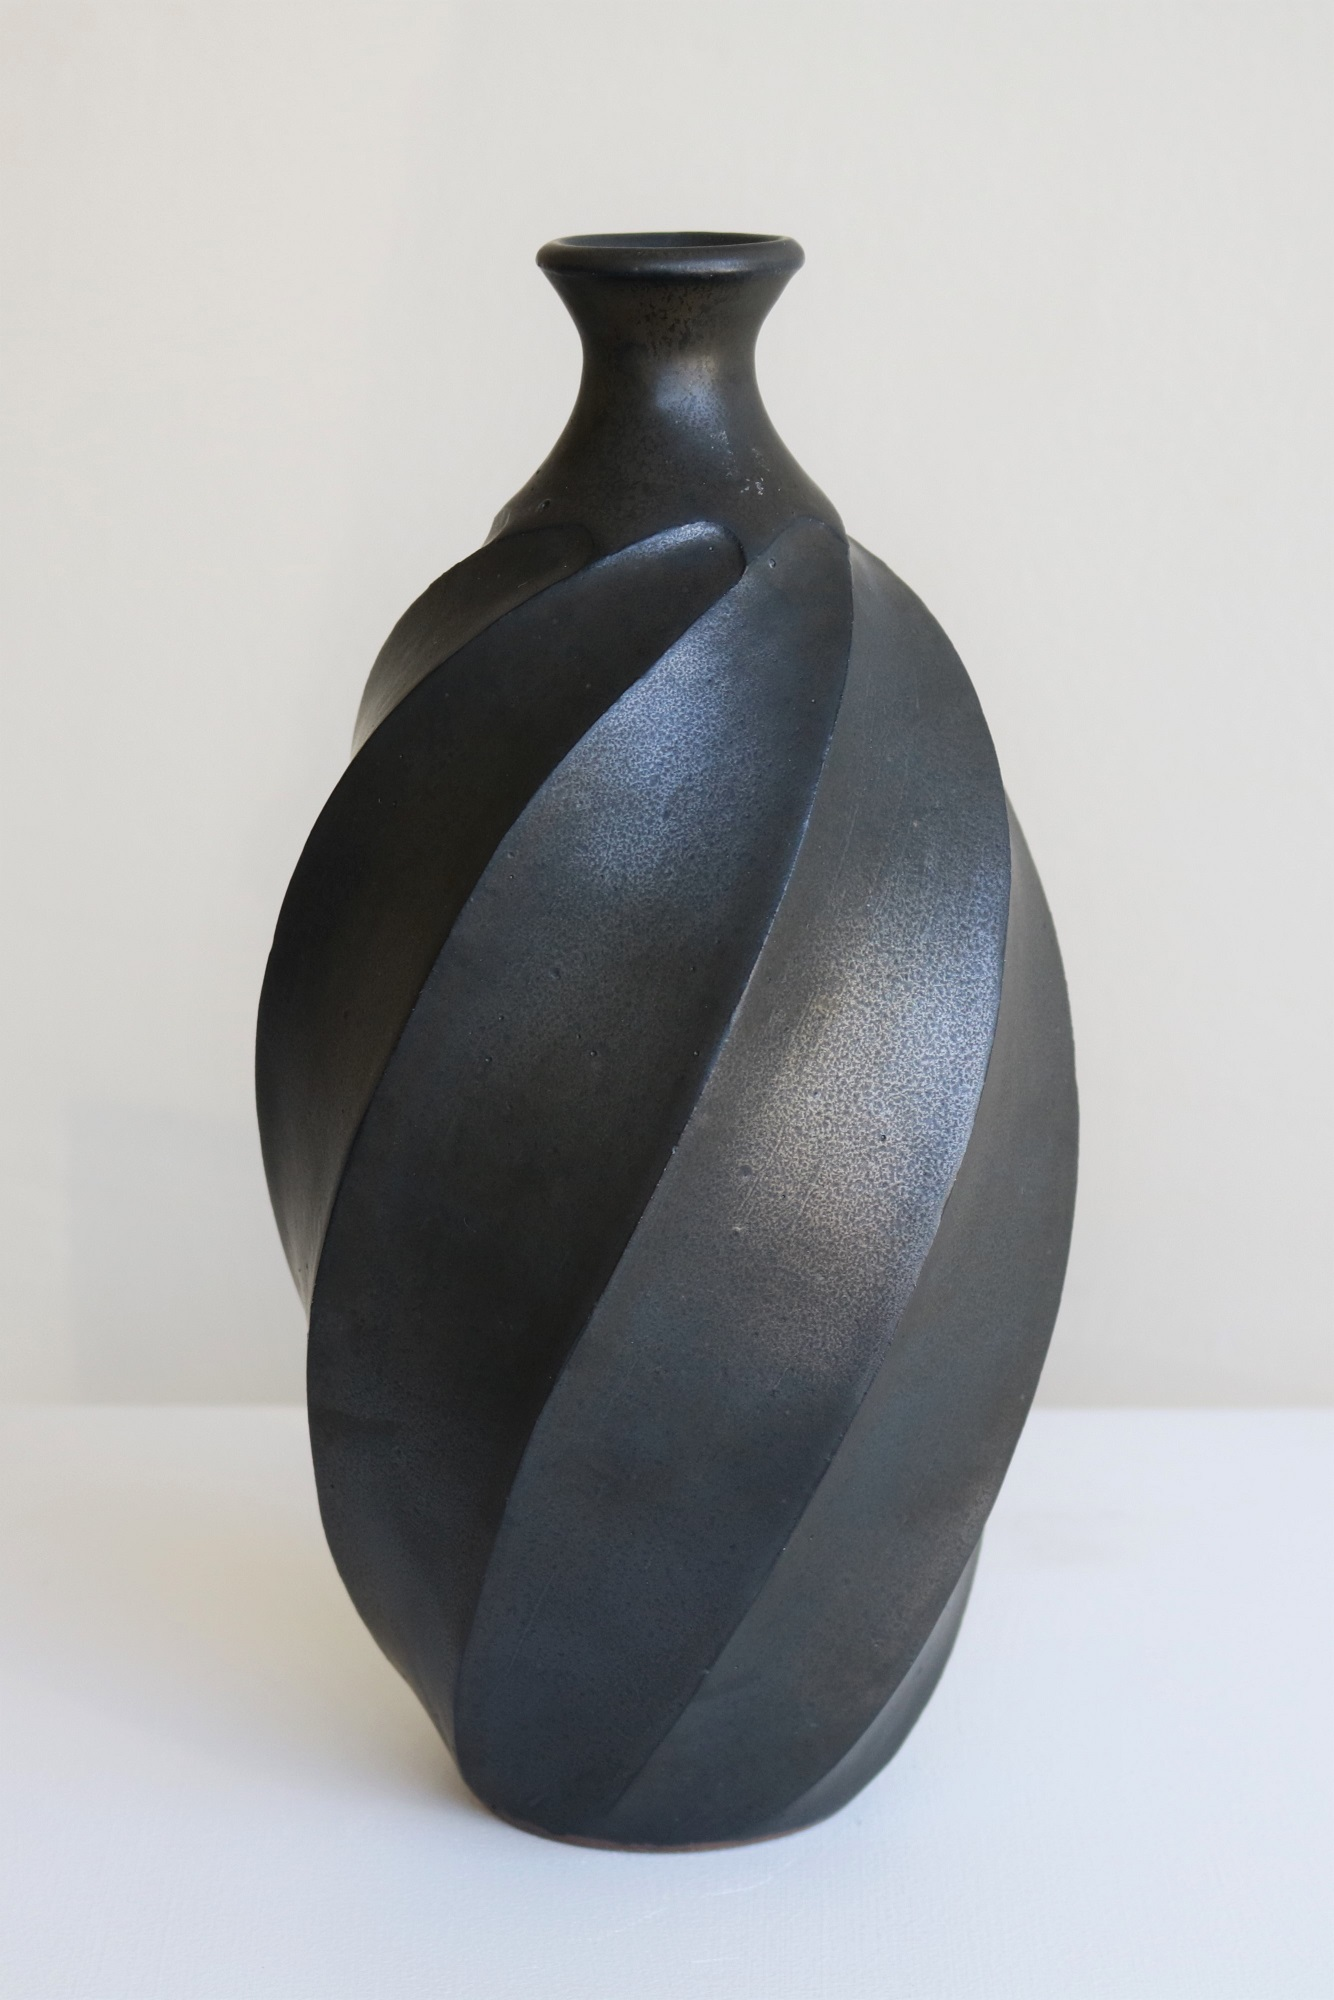 Terunobu Hirata,  Twist Facetted Bottle,  stoneware, black matt glaze, H26.5cm, 2017 AVAILABLE